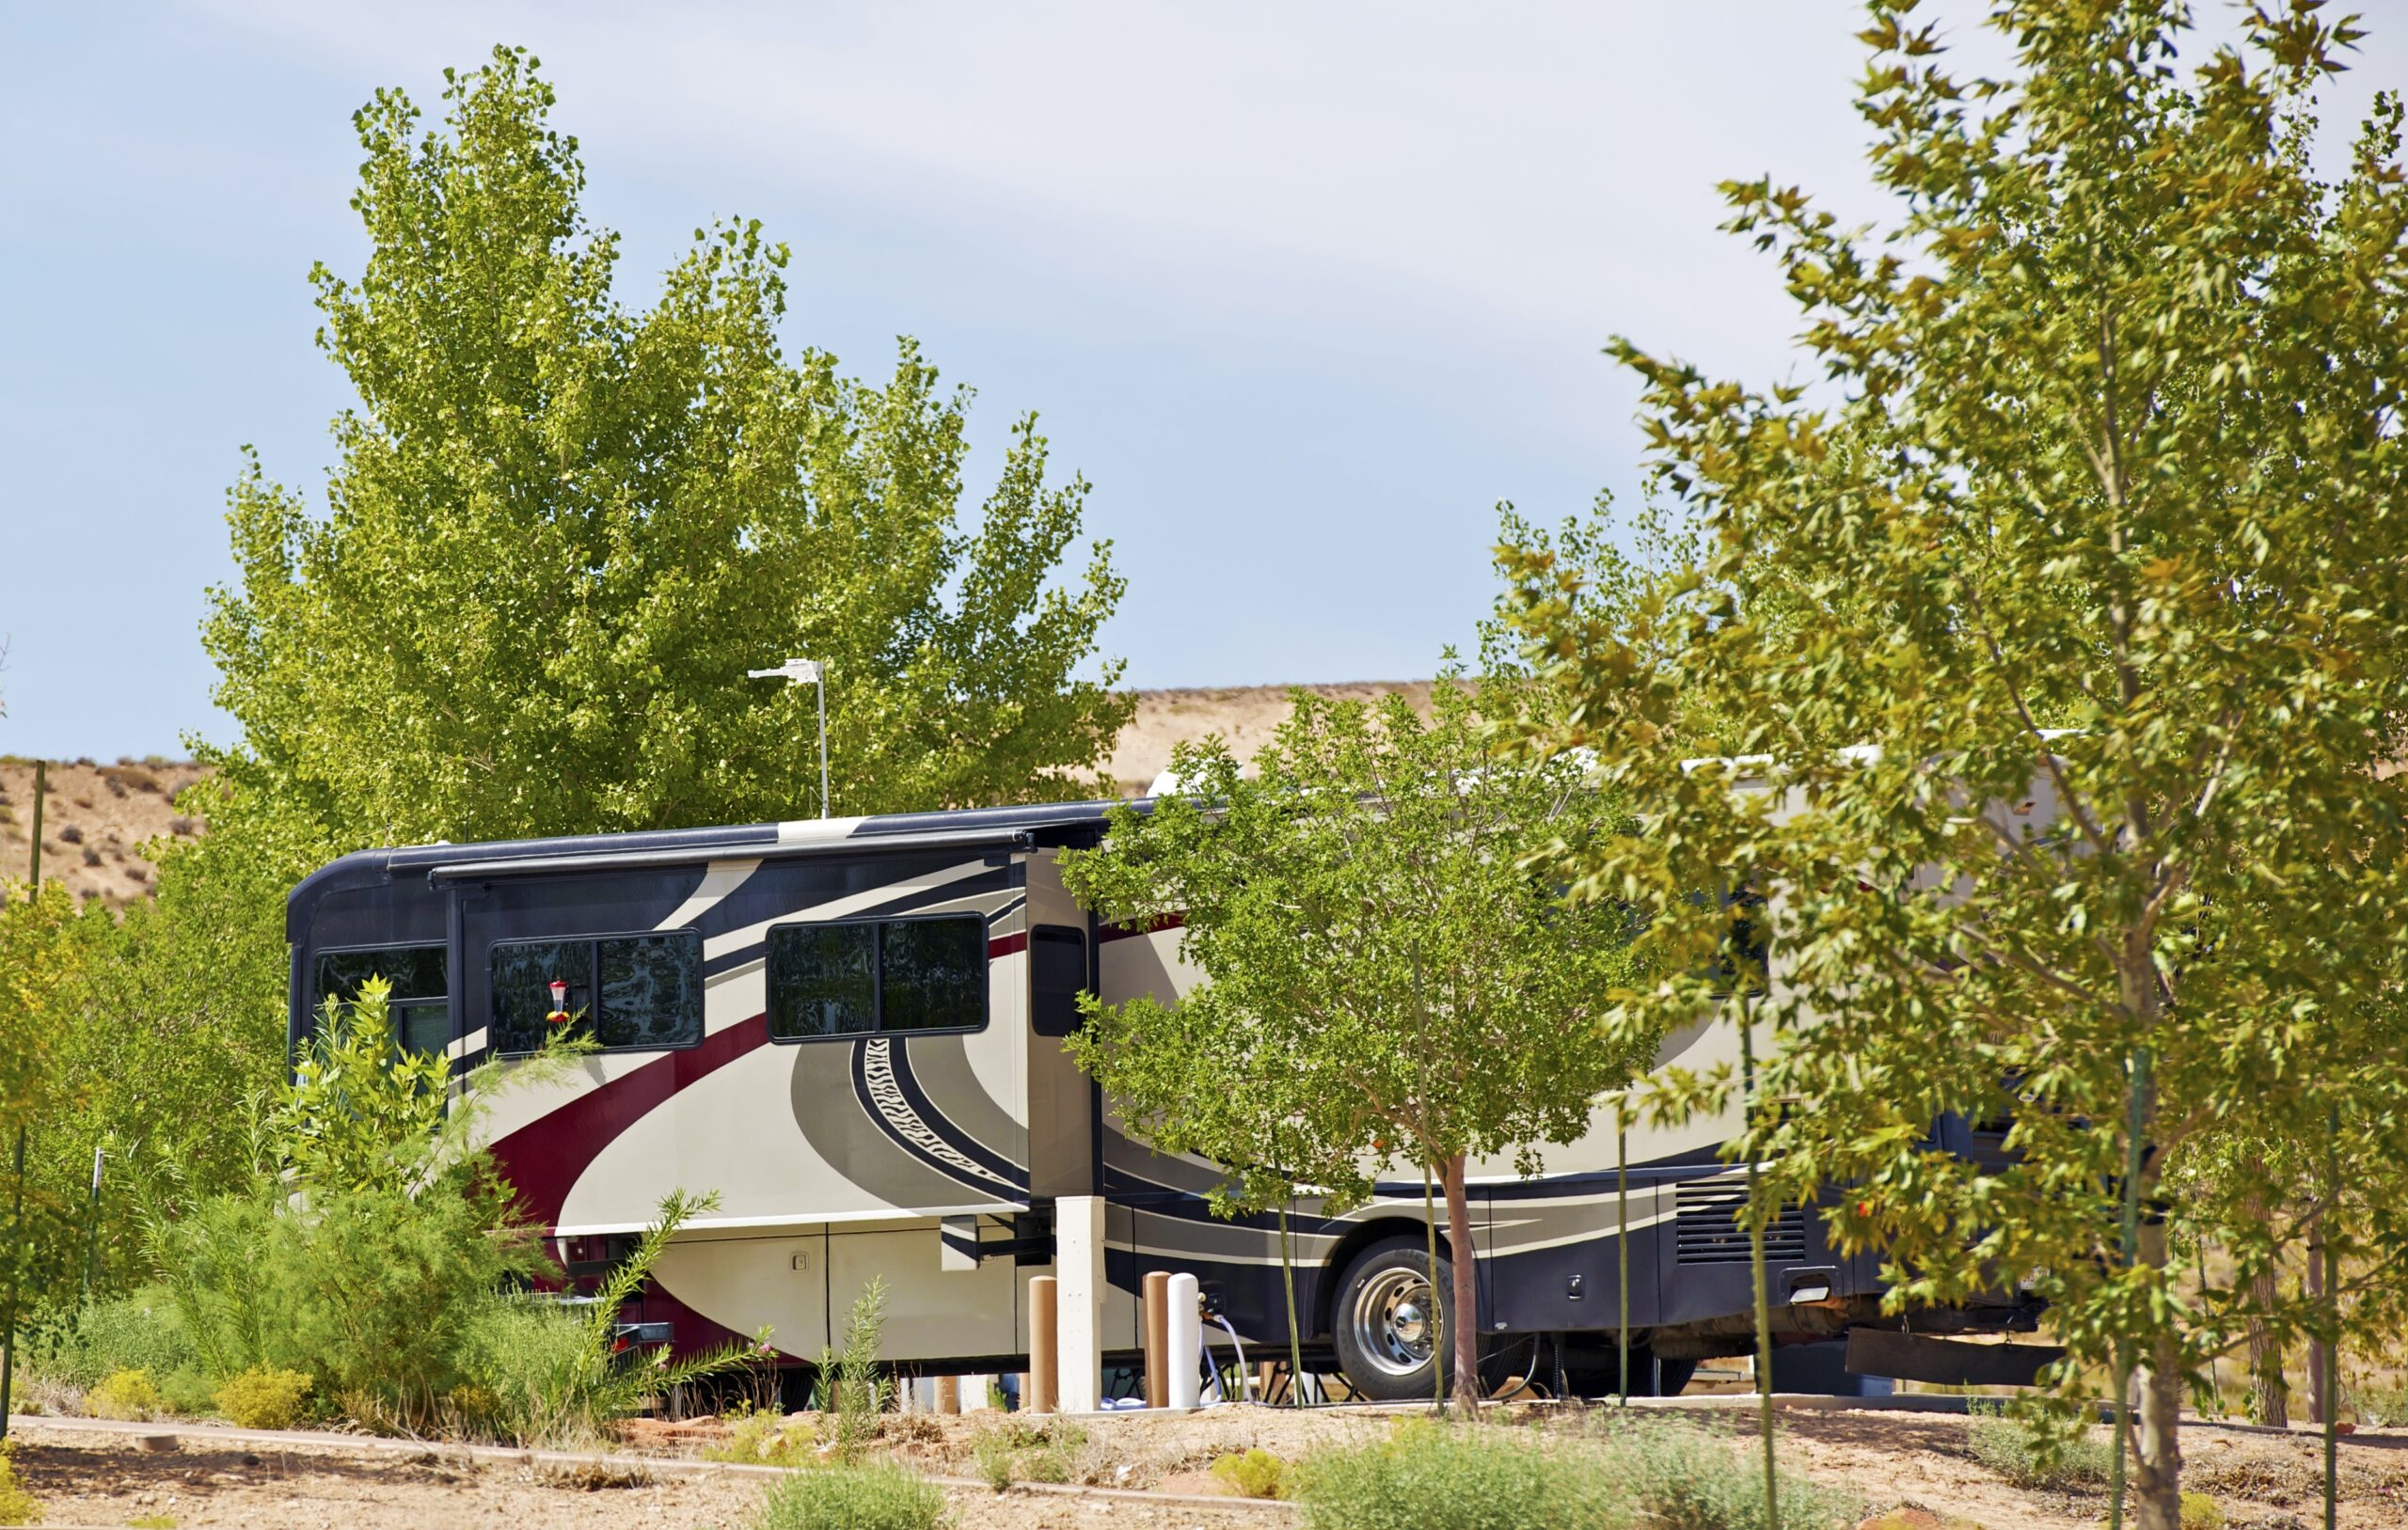 motorhome going off the grid in an RV park